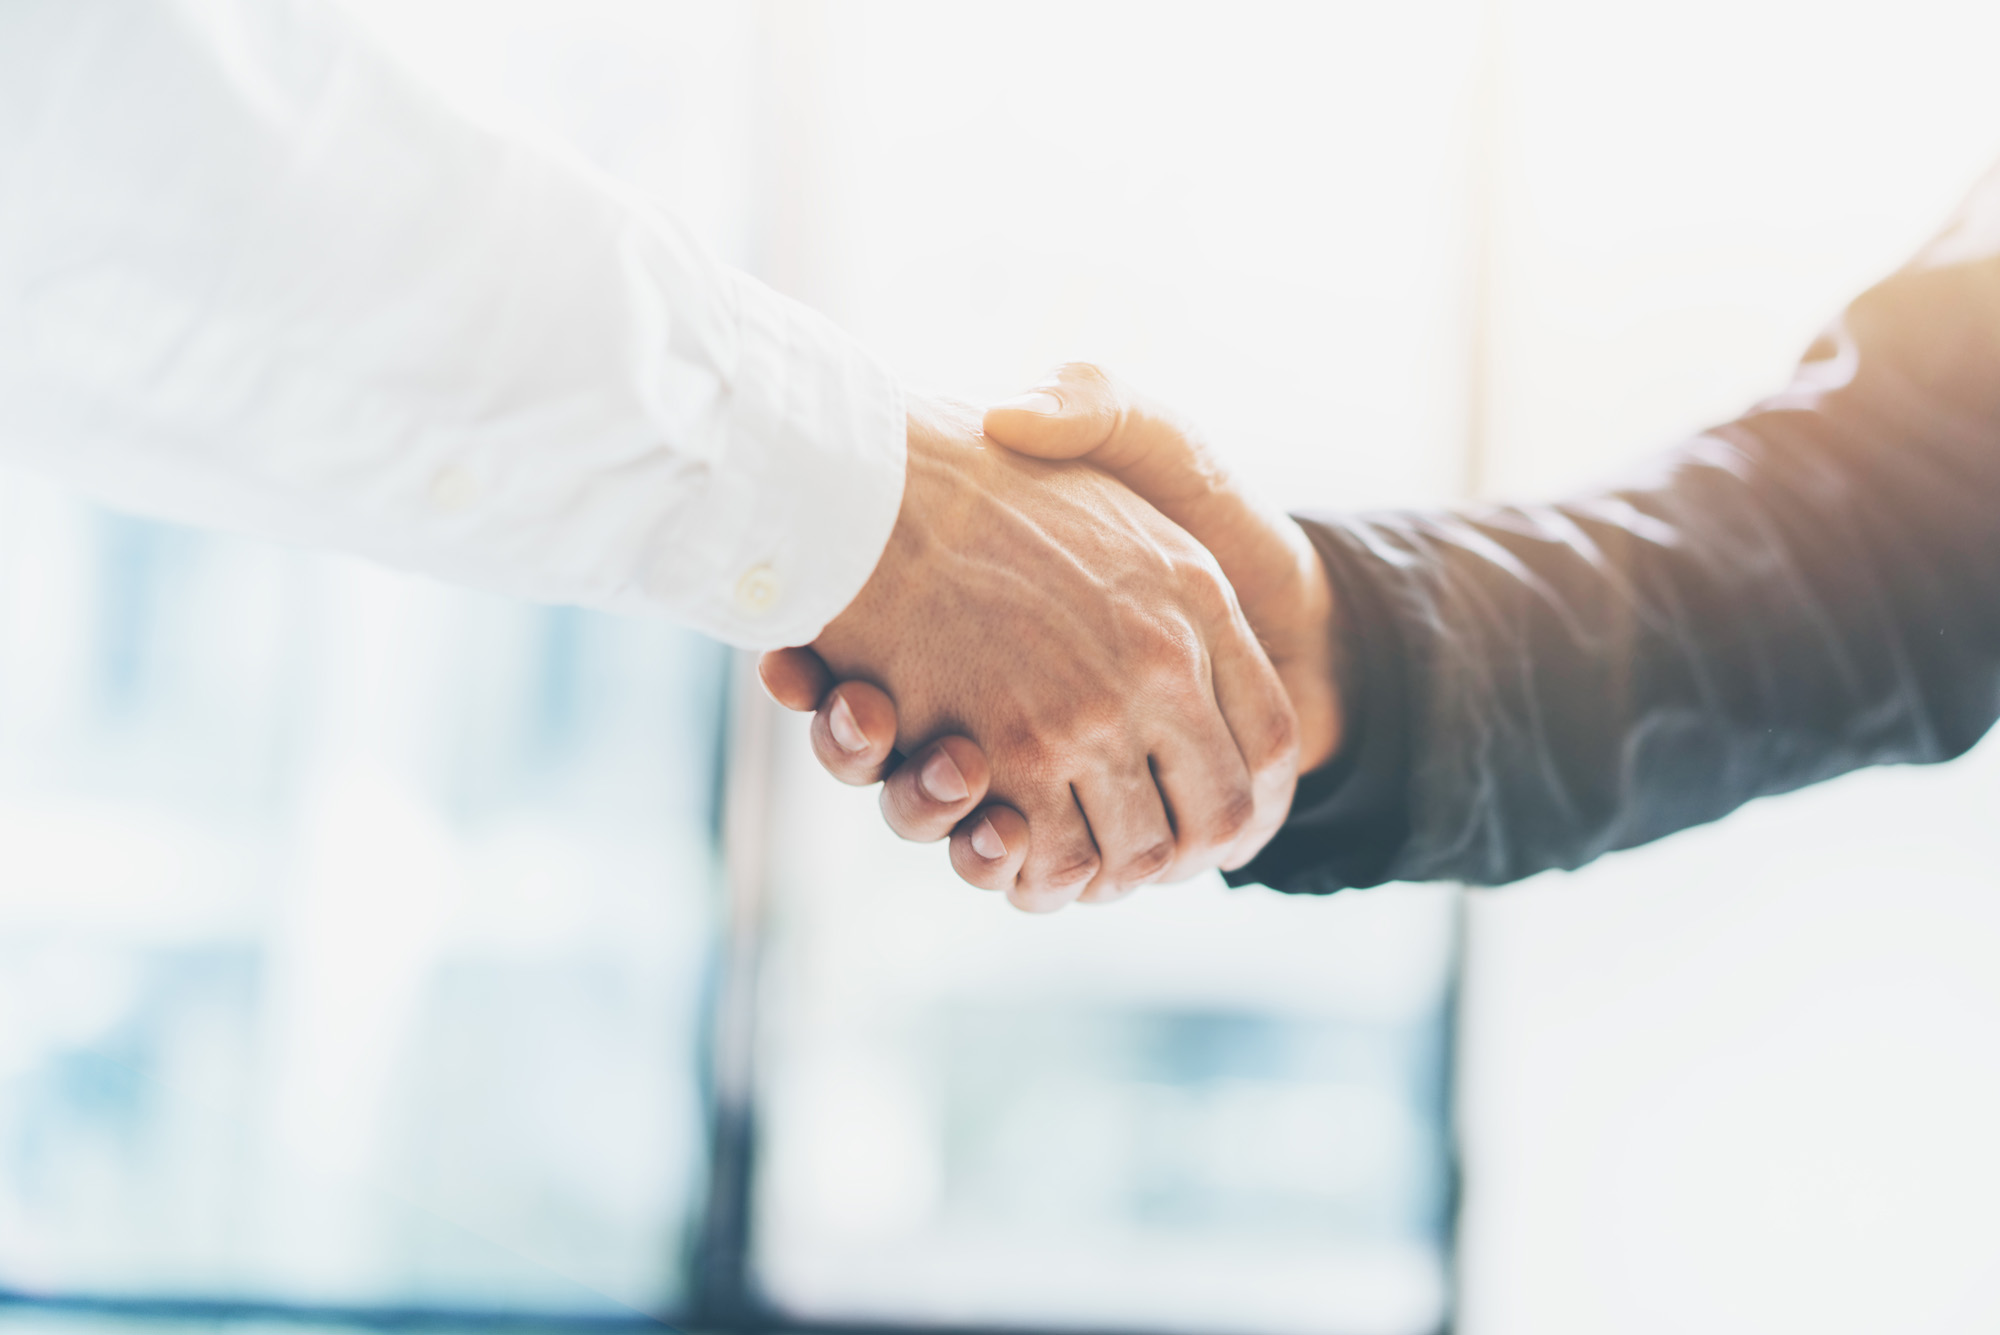 Business partnership meeting. Picture businessmans handshake. Successful businessmen handshaking after good deal. Horizontal, blurred